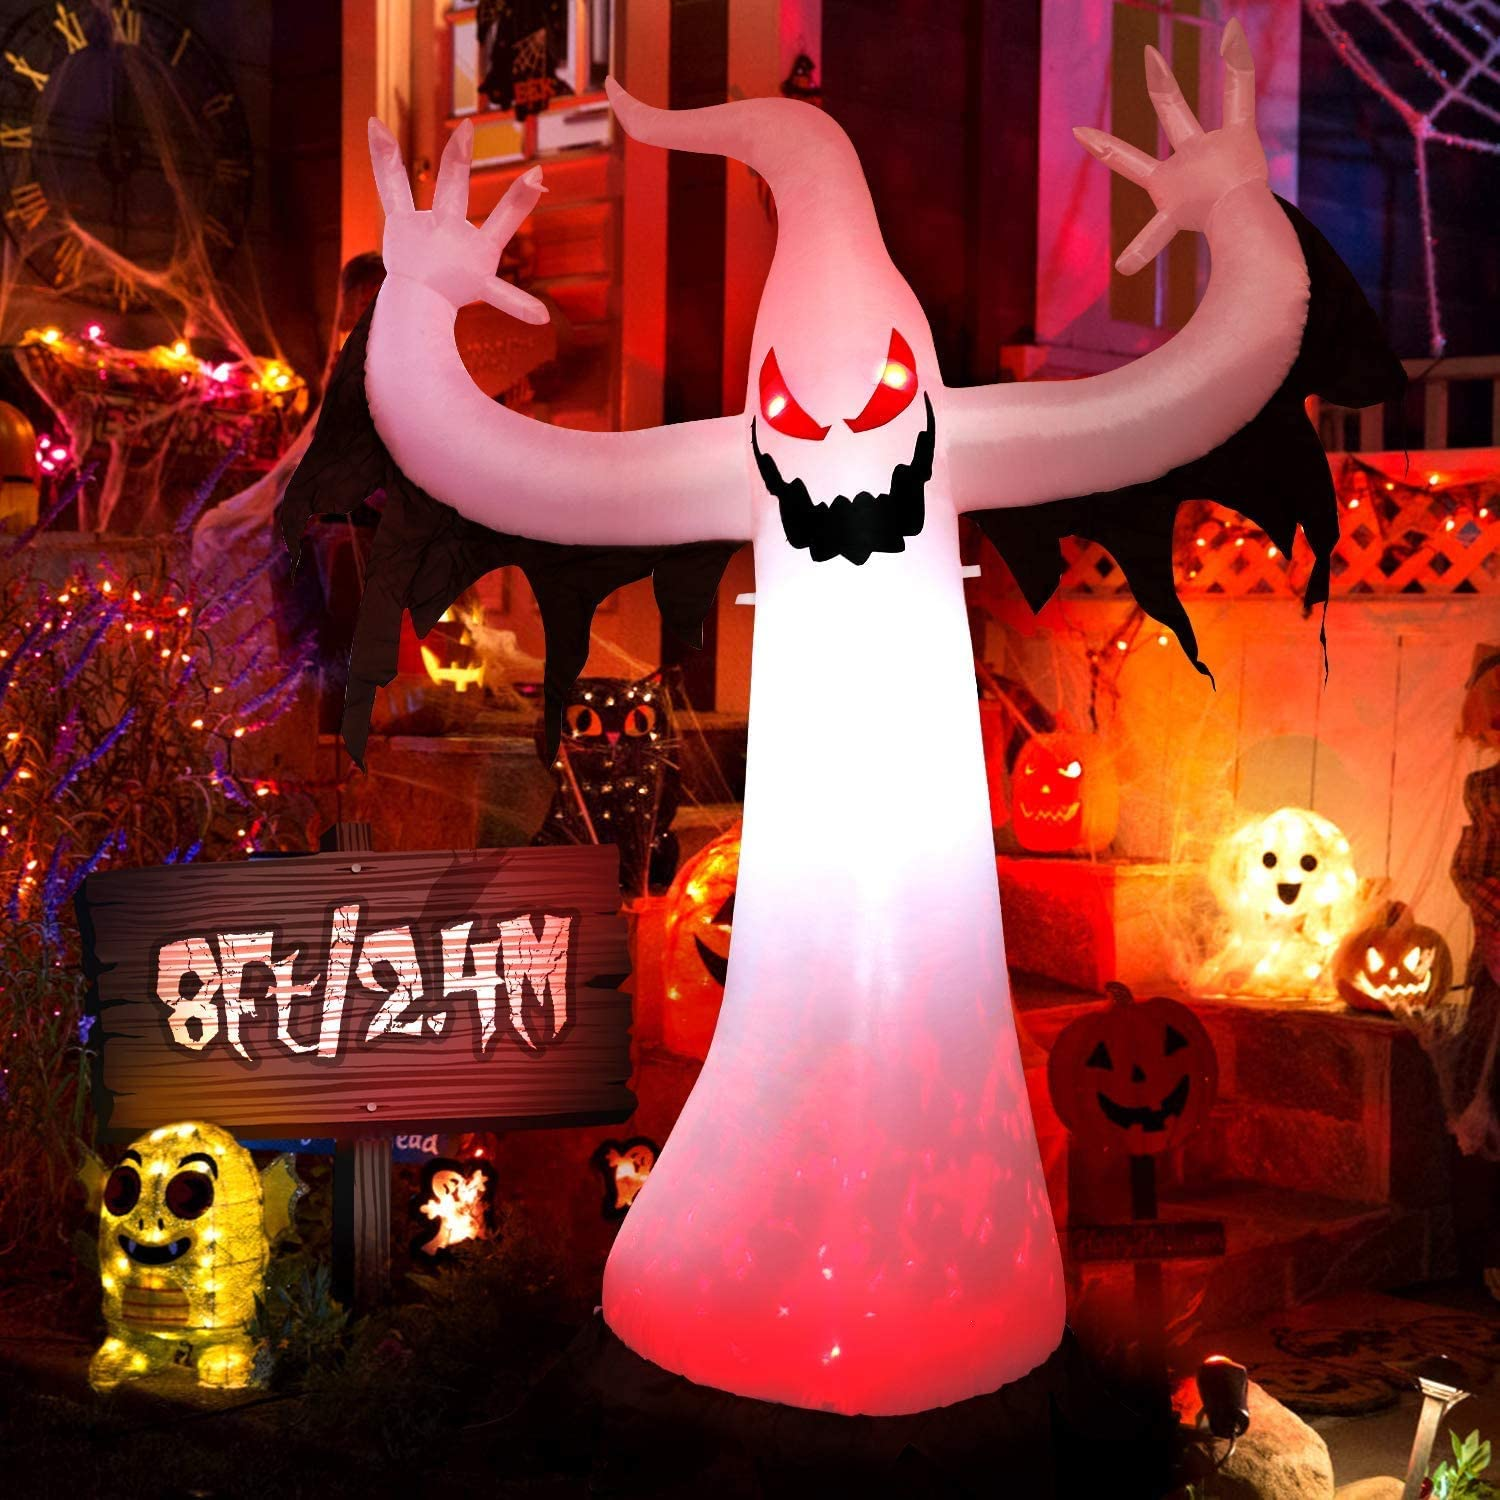 WEWILL Halloween Inflatables Haunter Max Max 46% OFF 44% OFF Decorations Ghost